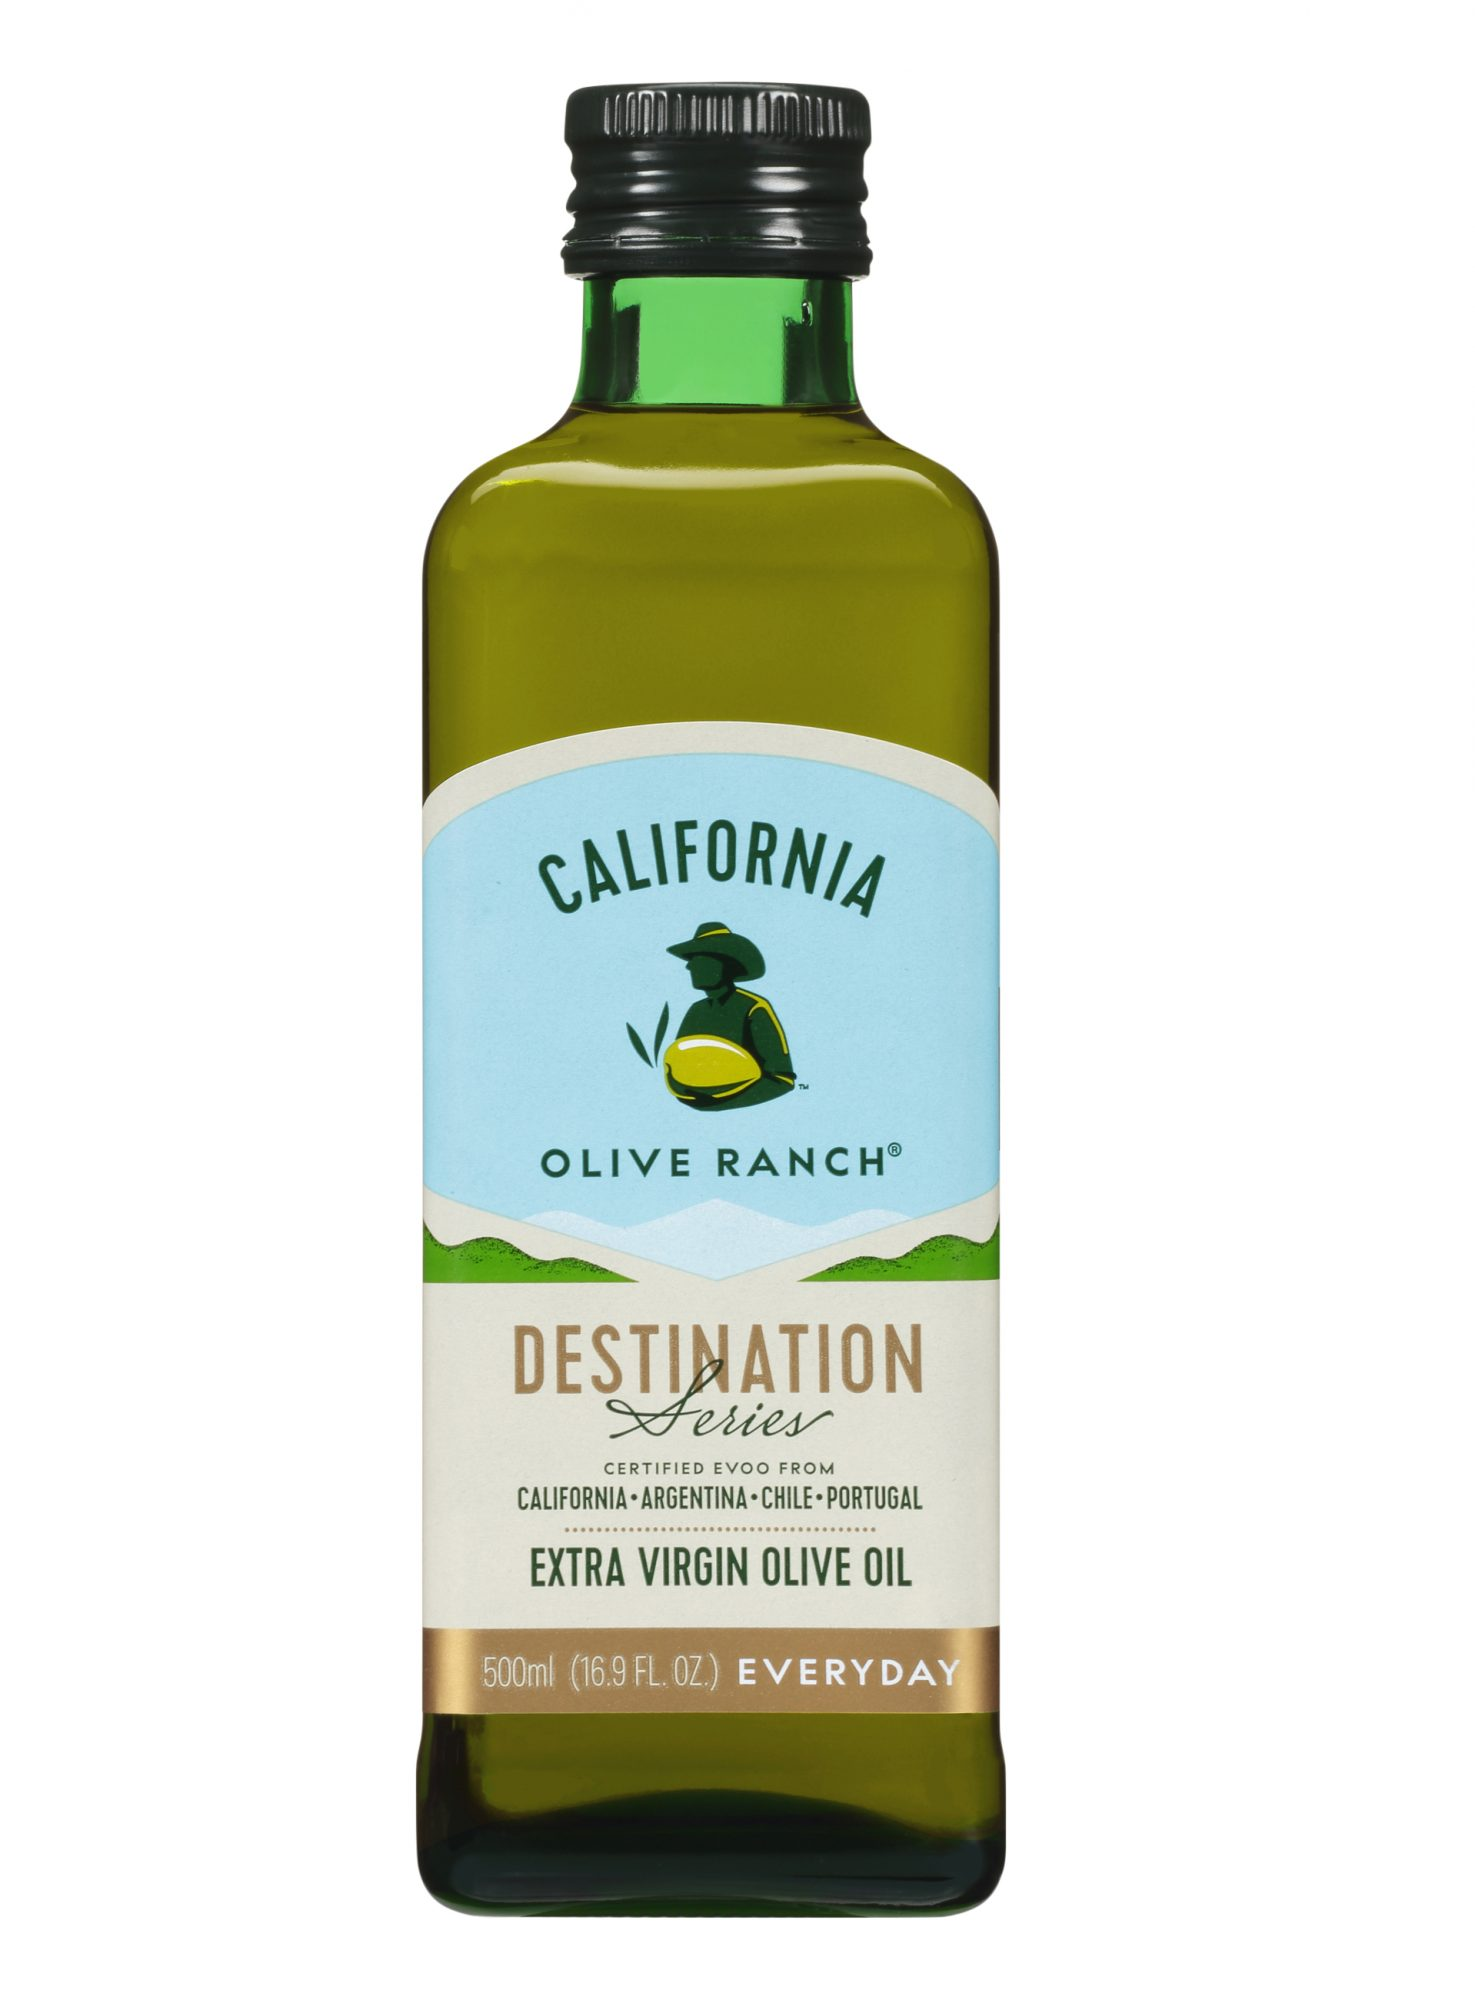 California Olive Ranch Destination Series--Everyday